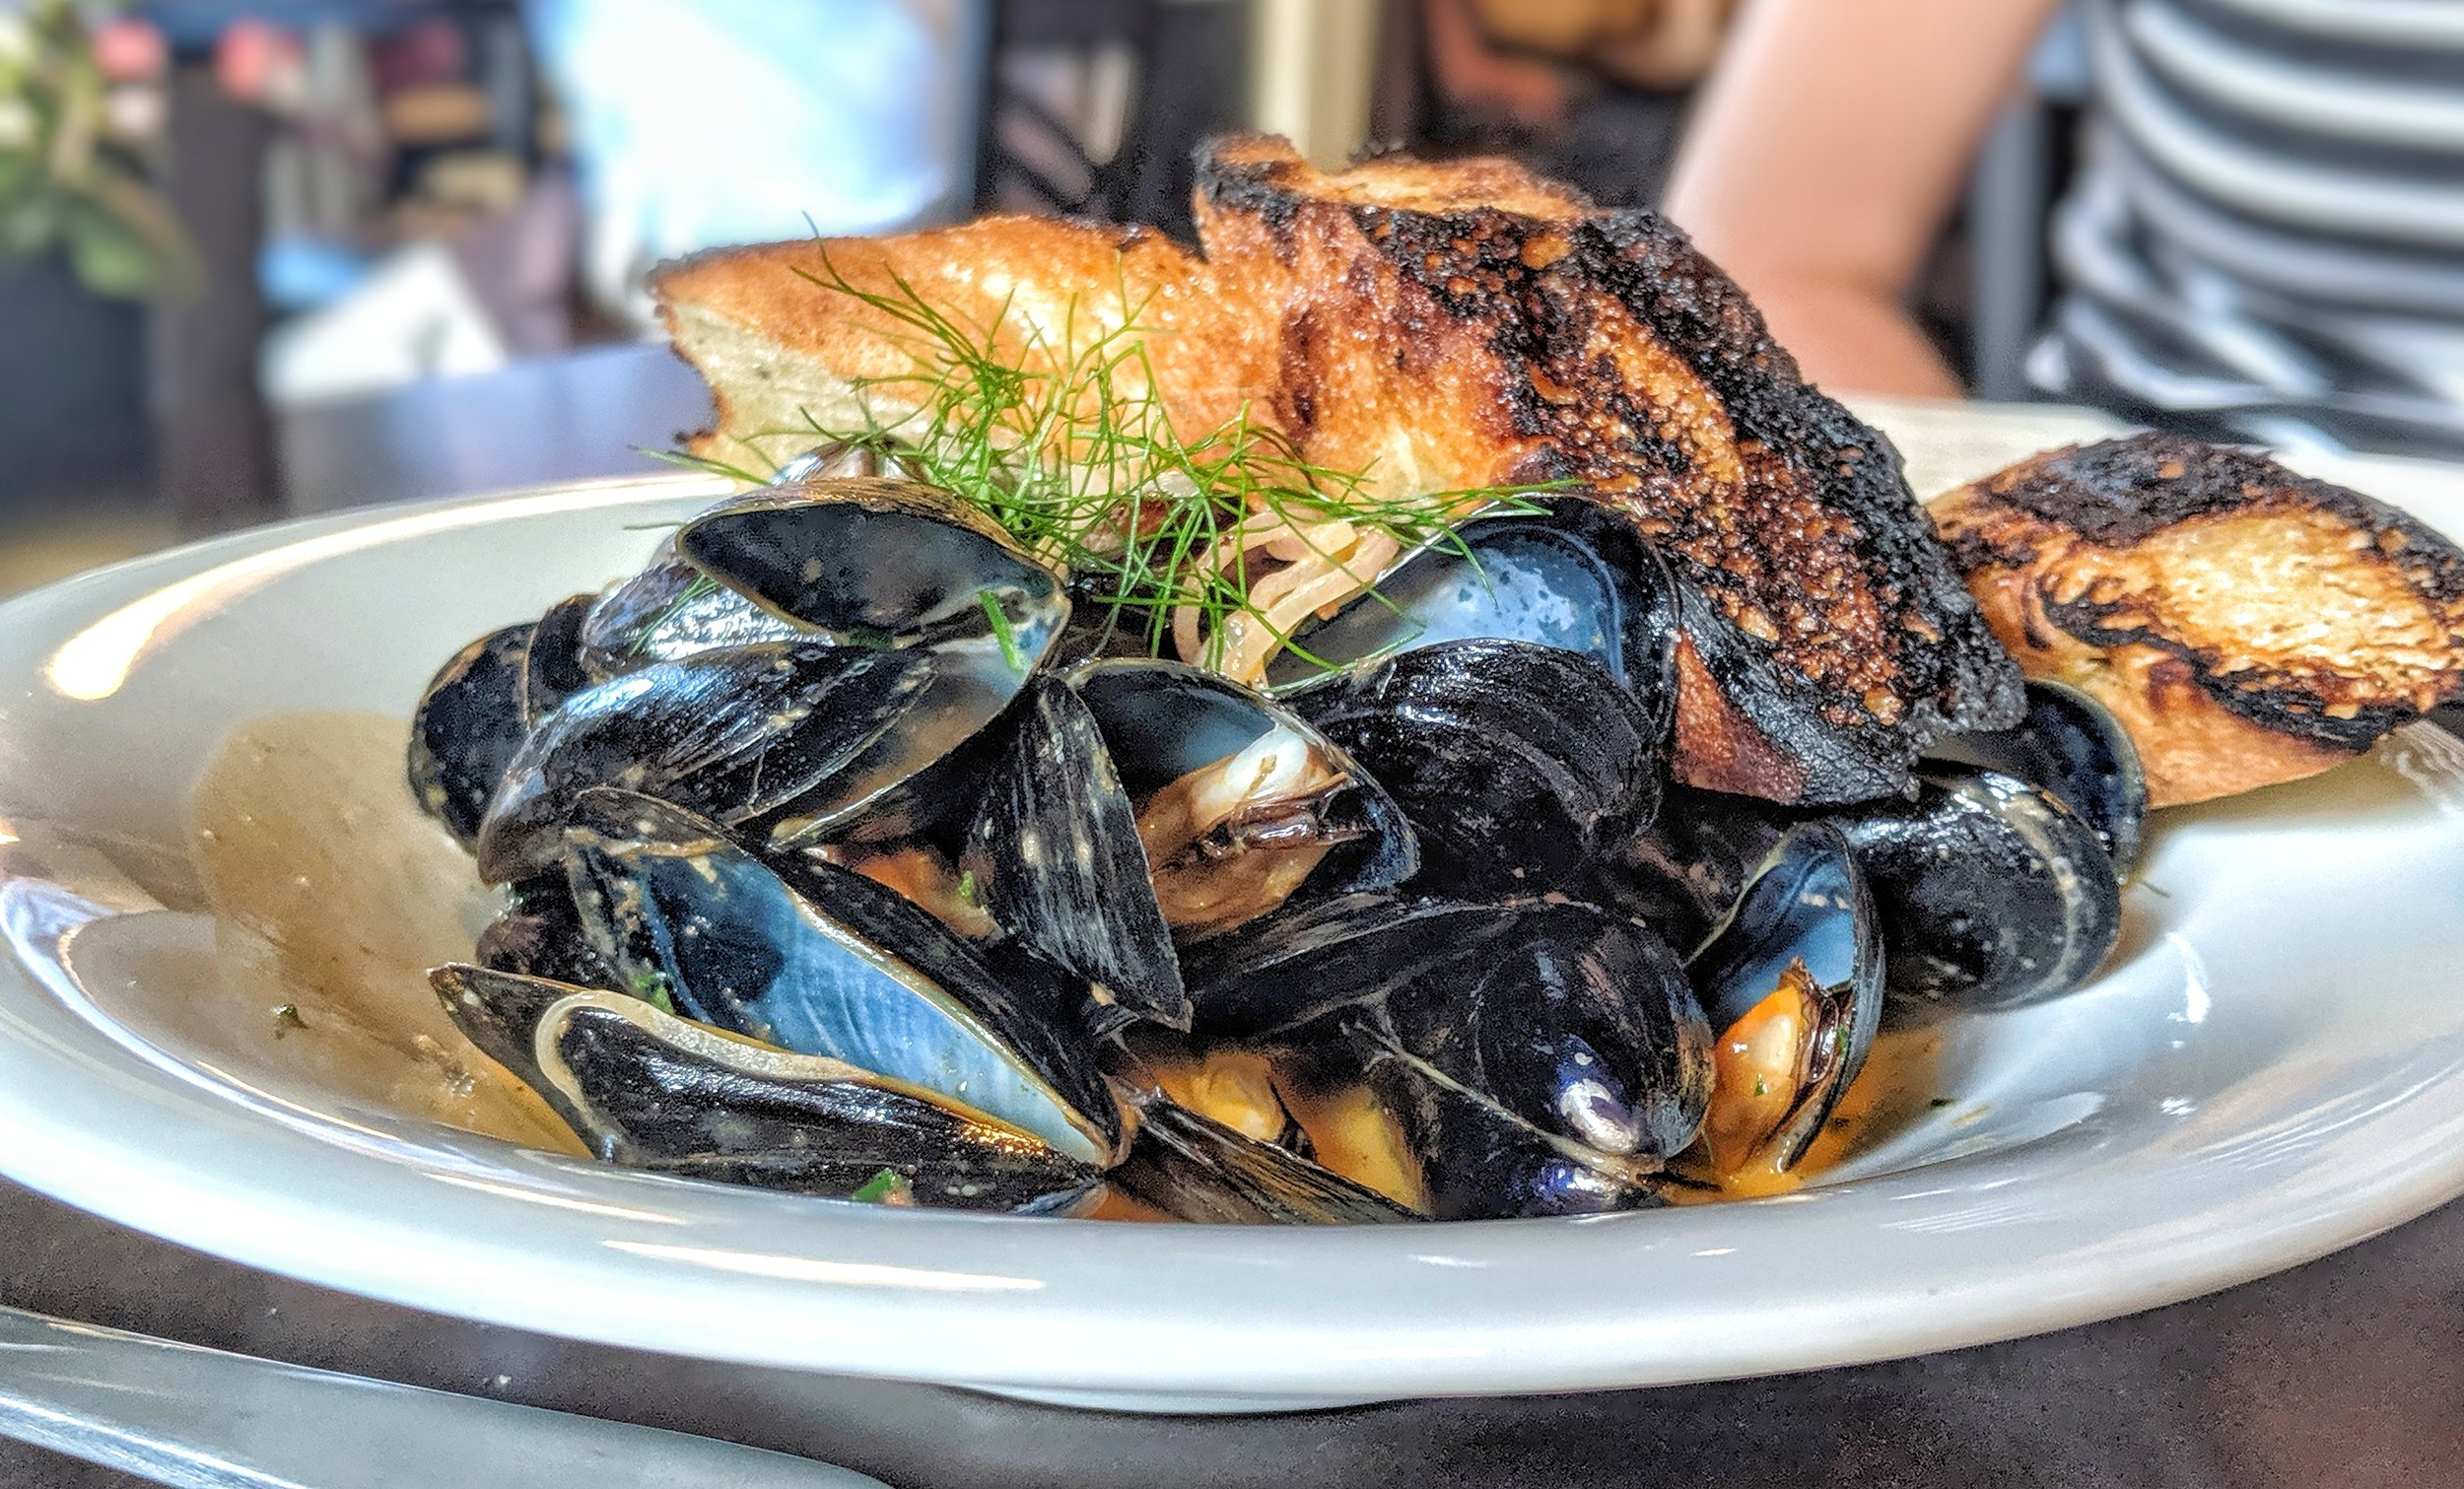 - Mussels with Shallot, Pernod, White Wine, 'Nduja Butter from Fress